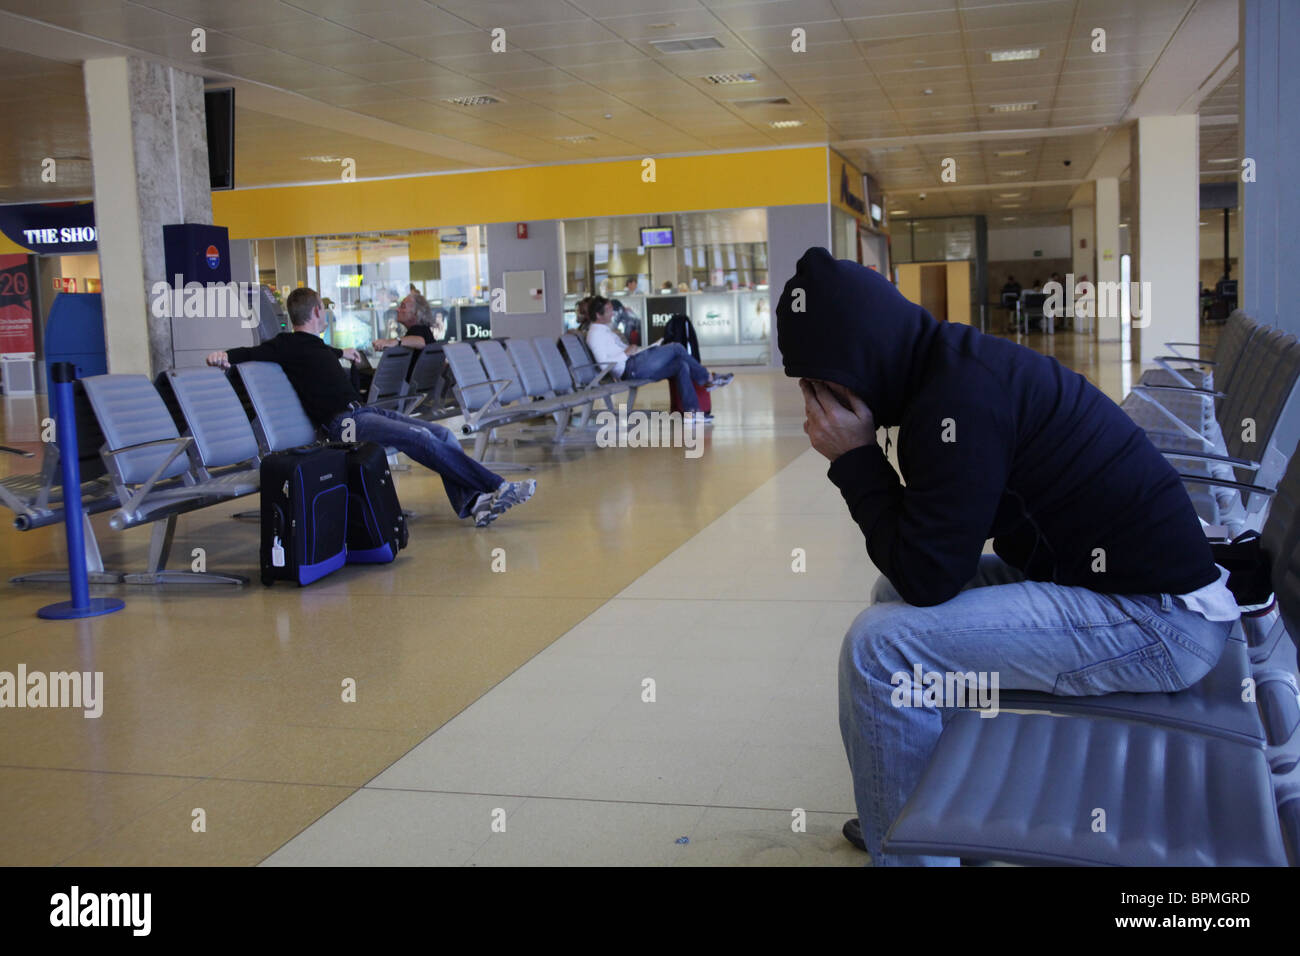 A man head-in-hands on some seats in Girona airport in Spain waiting for a delayed flight - Stock Image